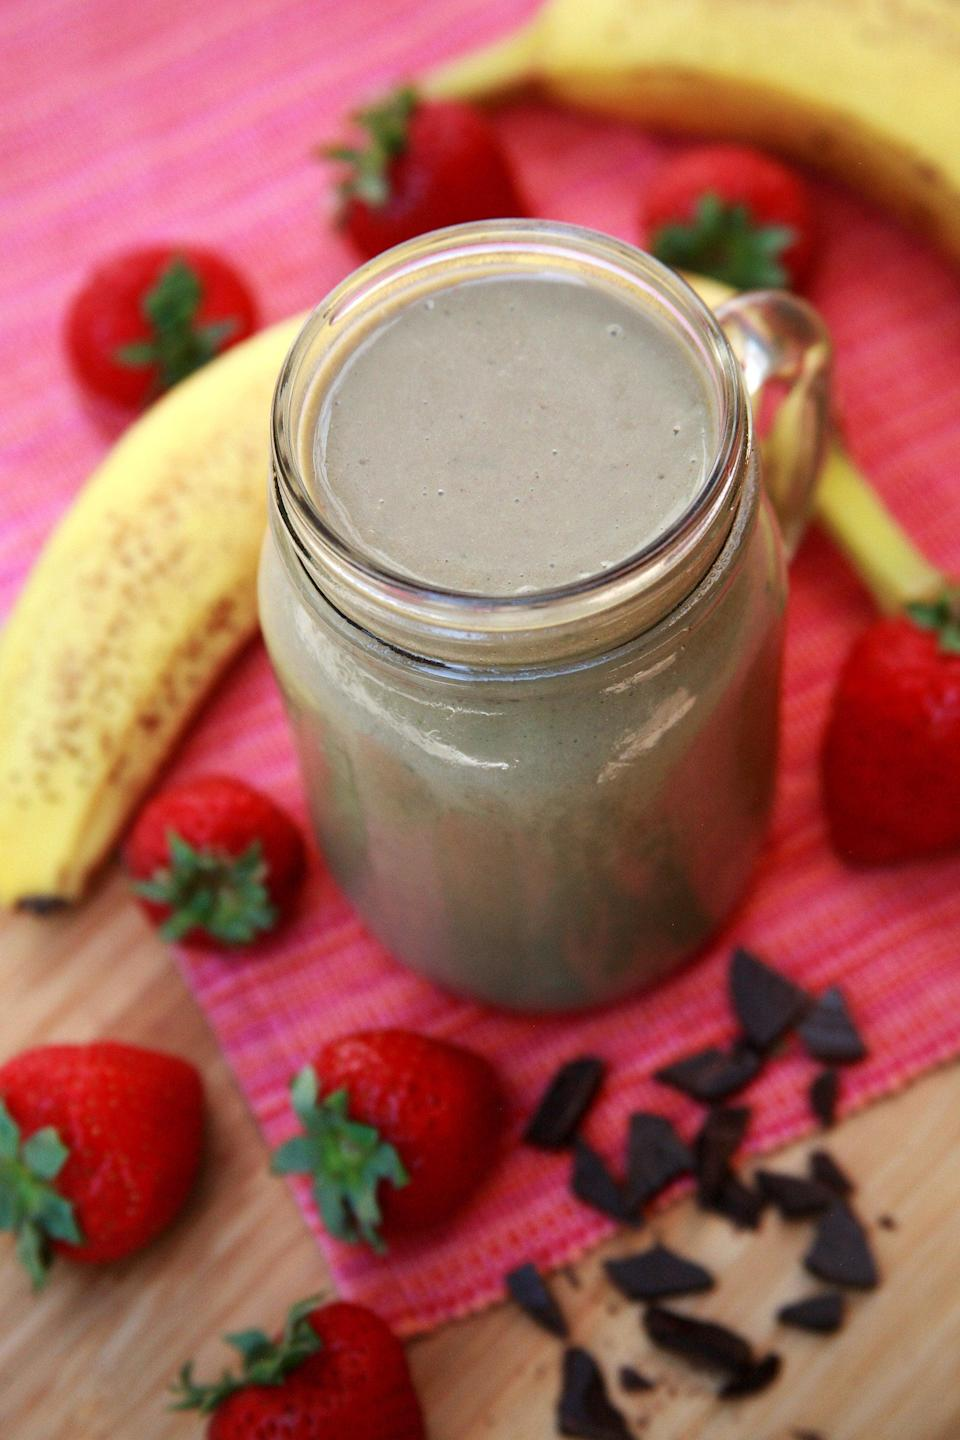 """<p>This simple smoothie gives us chocolate for breakfast, and we have no problem with that.</p> <p><strong>Protein:</strong> 25.1 grams</p> <p><strong>Get the recipe:</strong> <a href=""""https://www.popsugar.com/fitness/Recipe-Chocolate-Strawberry-Banana-Smoothie-7166332"""" class=""""link rapid-noclick-resp"""" rel=""""nofollow noopener"""" target=""""_blank"""" data-ylk=""""slk:nutty chocolate strawberry banana smoothie"""">nutty chocolate strawberry banana smoothie</a></p>"""